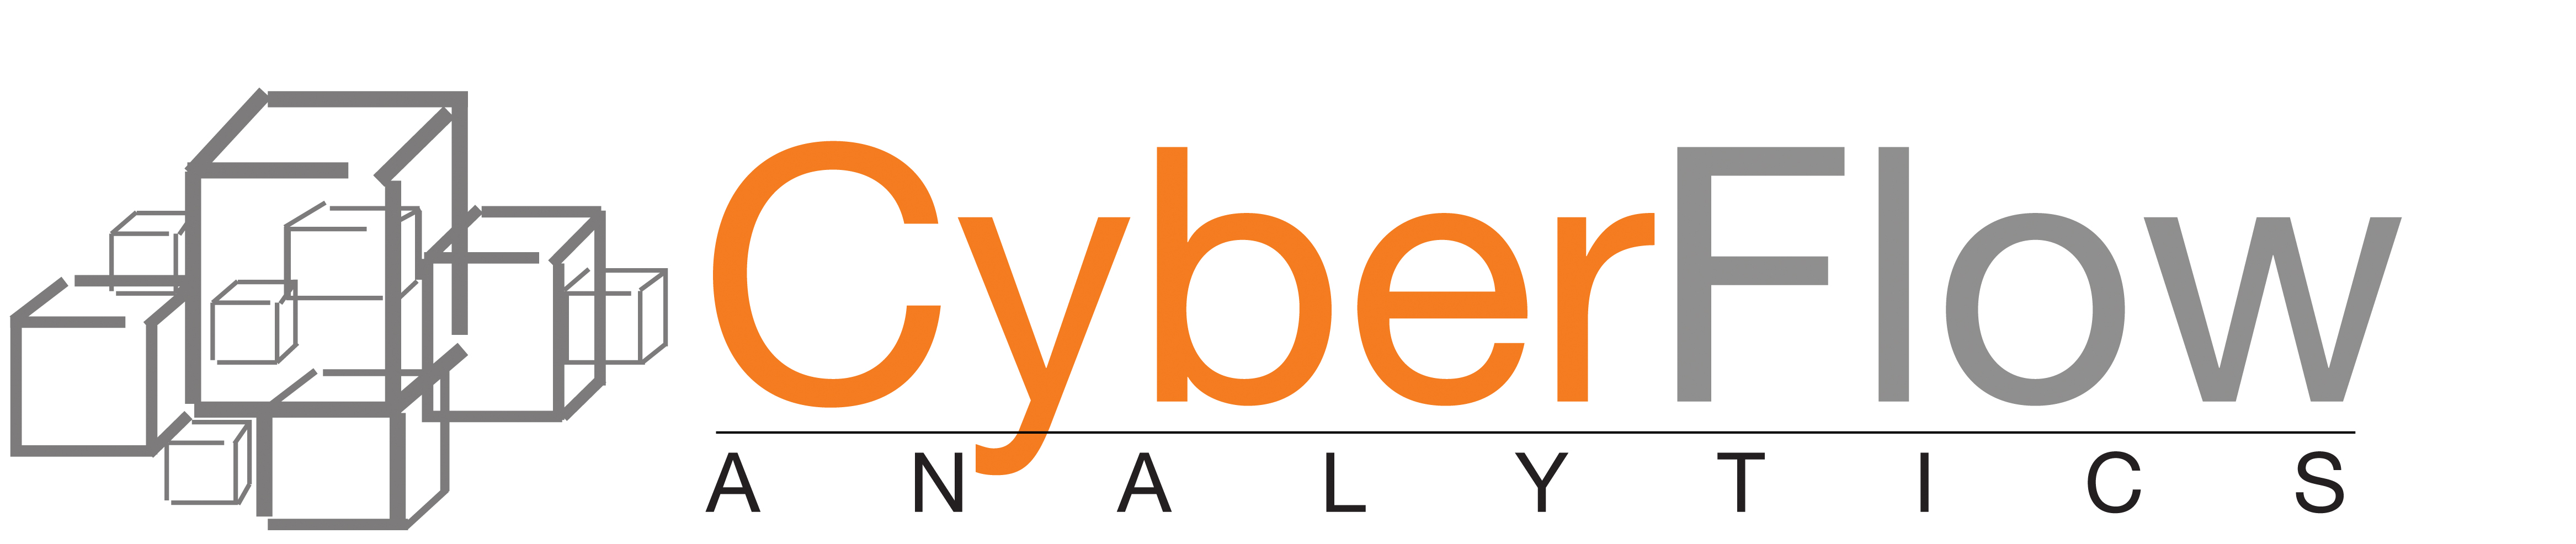 CyberFlow Analytics